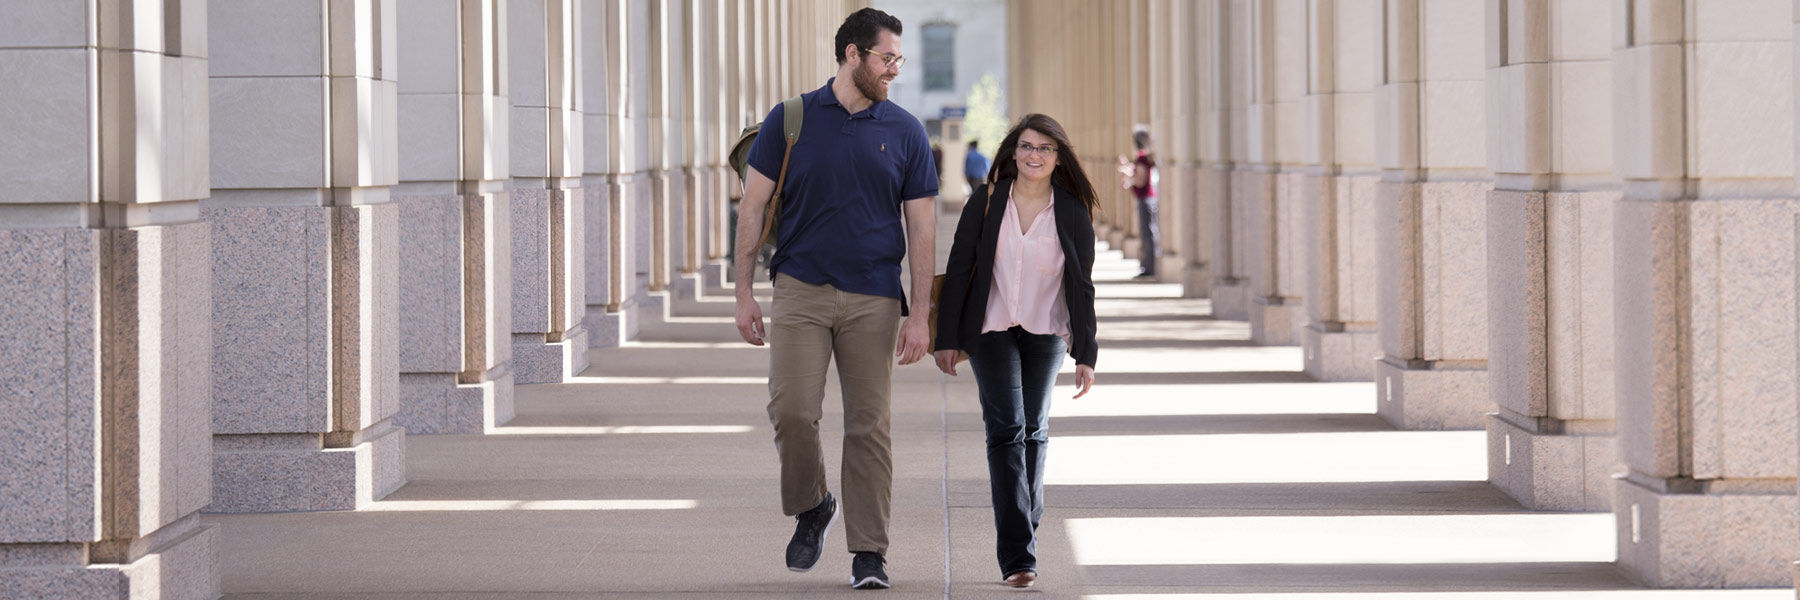 Two grad students walk together from the Indiana statehouse.